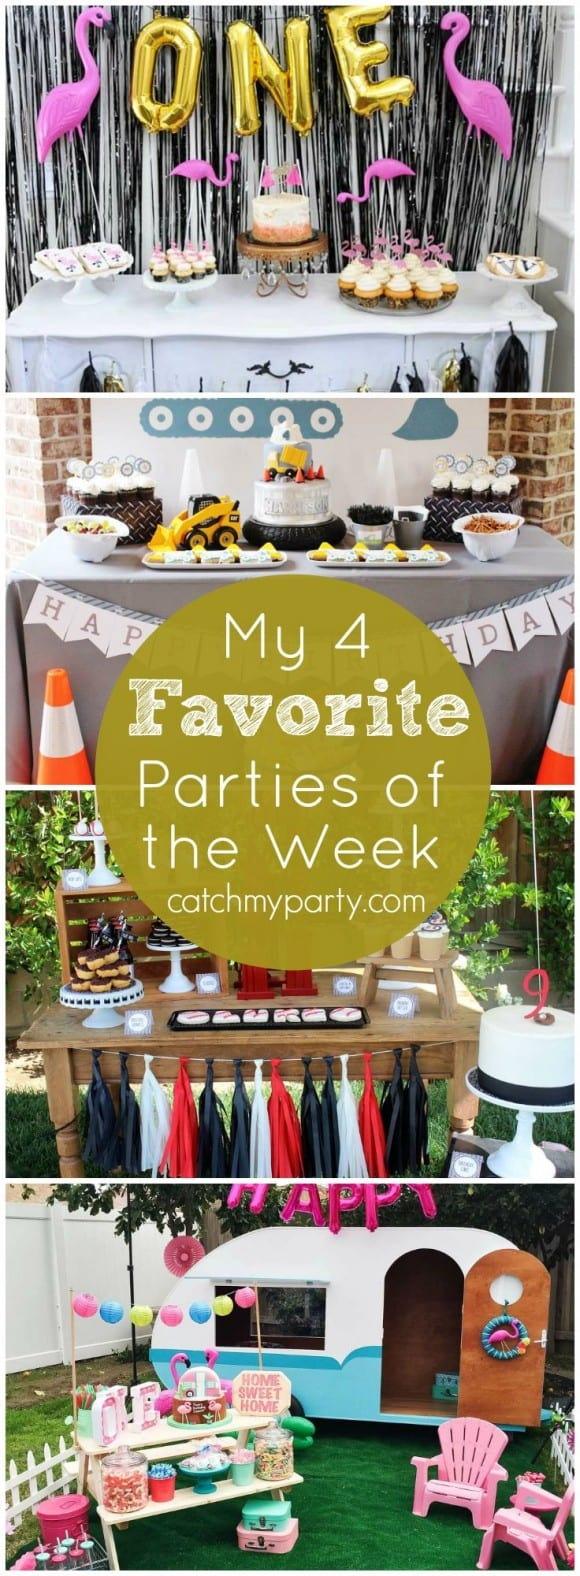 My 4 favorite parties include: a flamingo party, a construction party, a baseball party, and a camper party. These are all incredible! | CatchMyParty.com